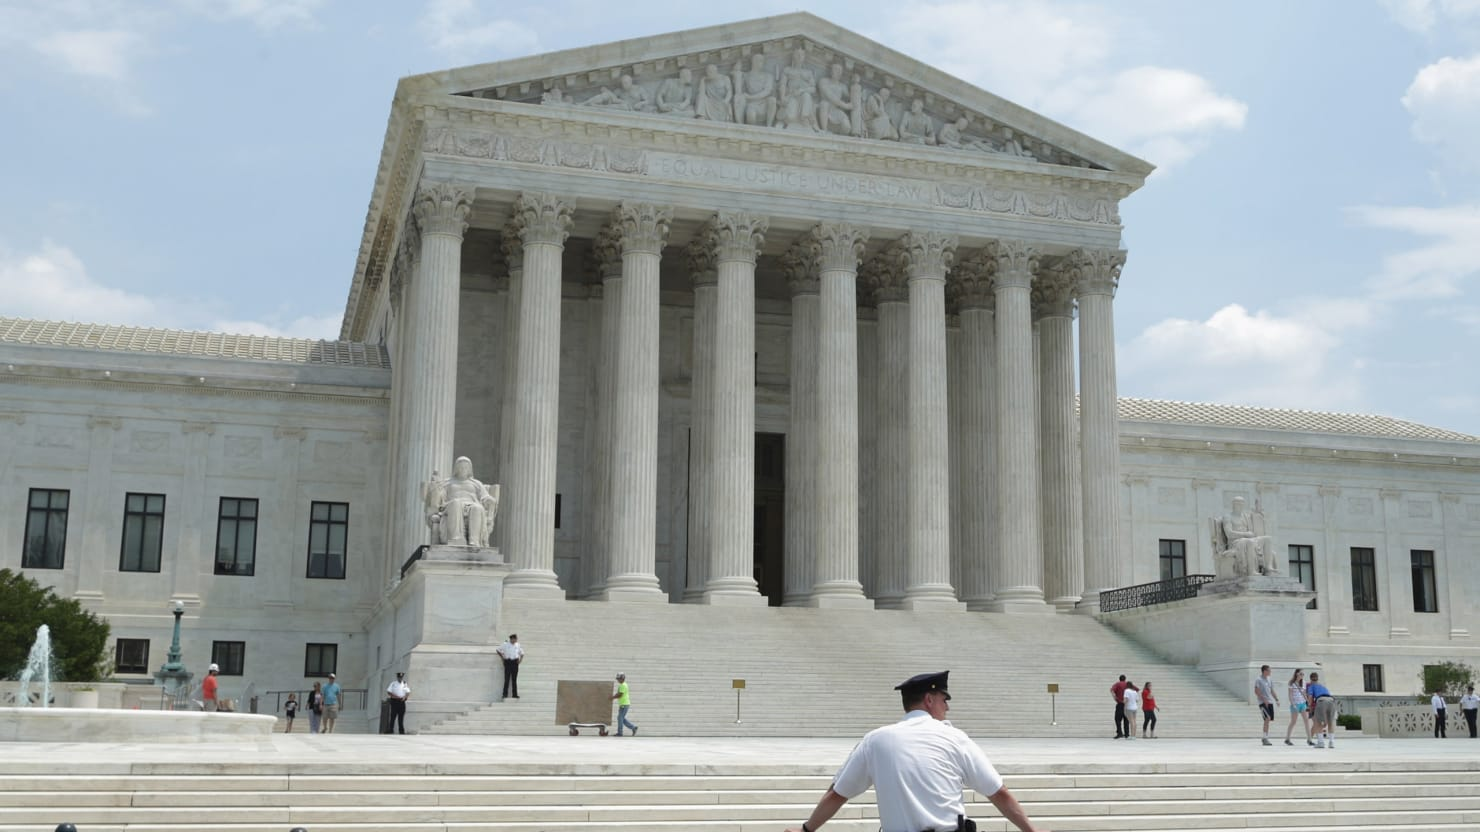 From Smartphones to Abortion, the Supreme Court Is About to Decide on Several Major Cases